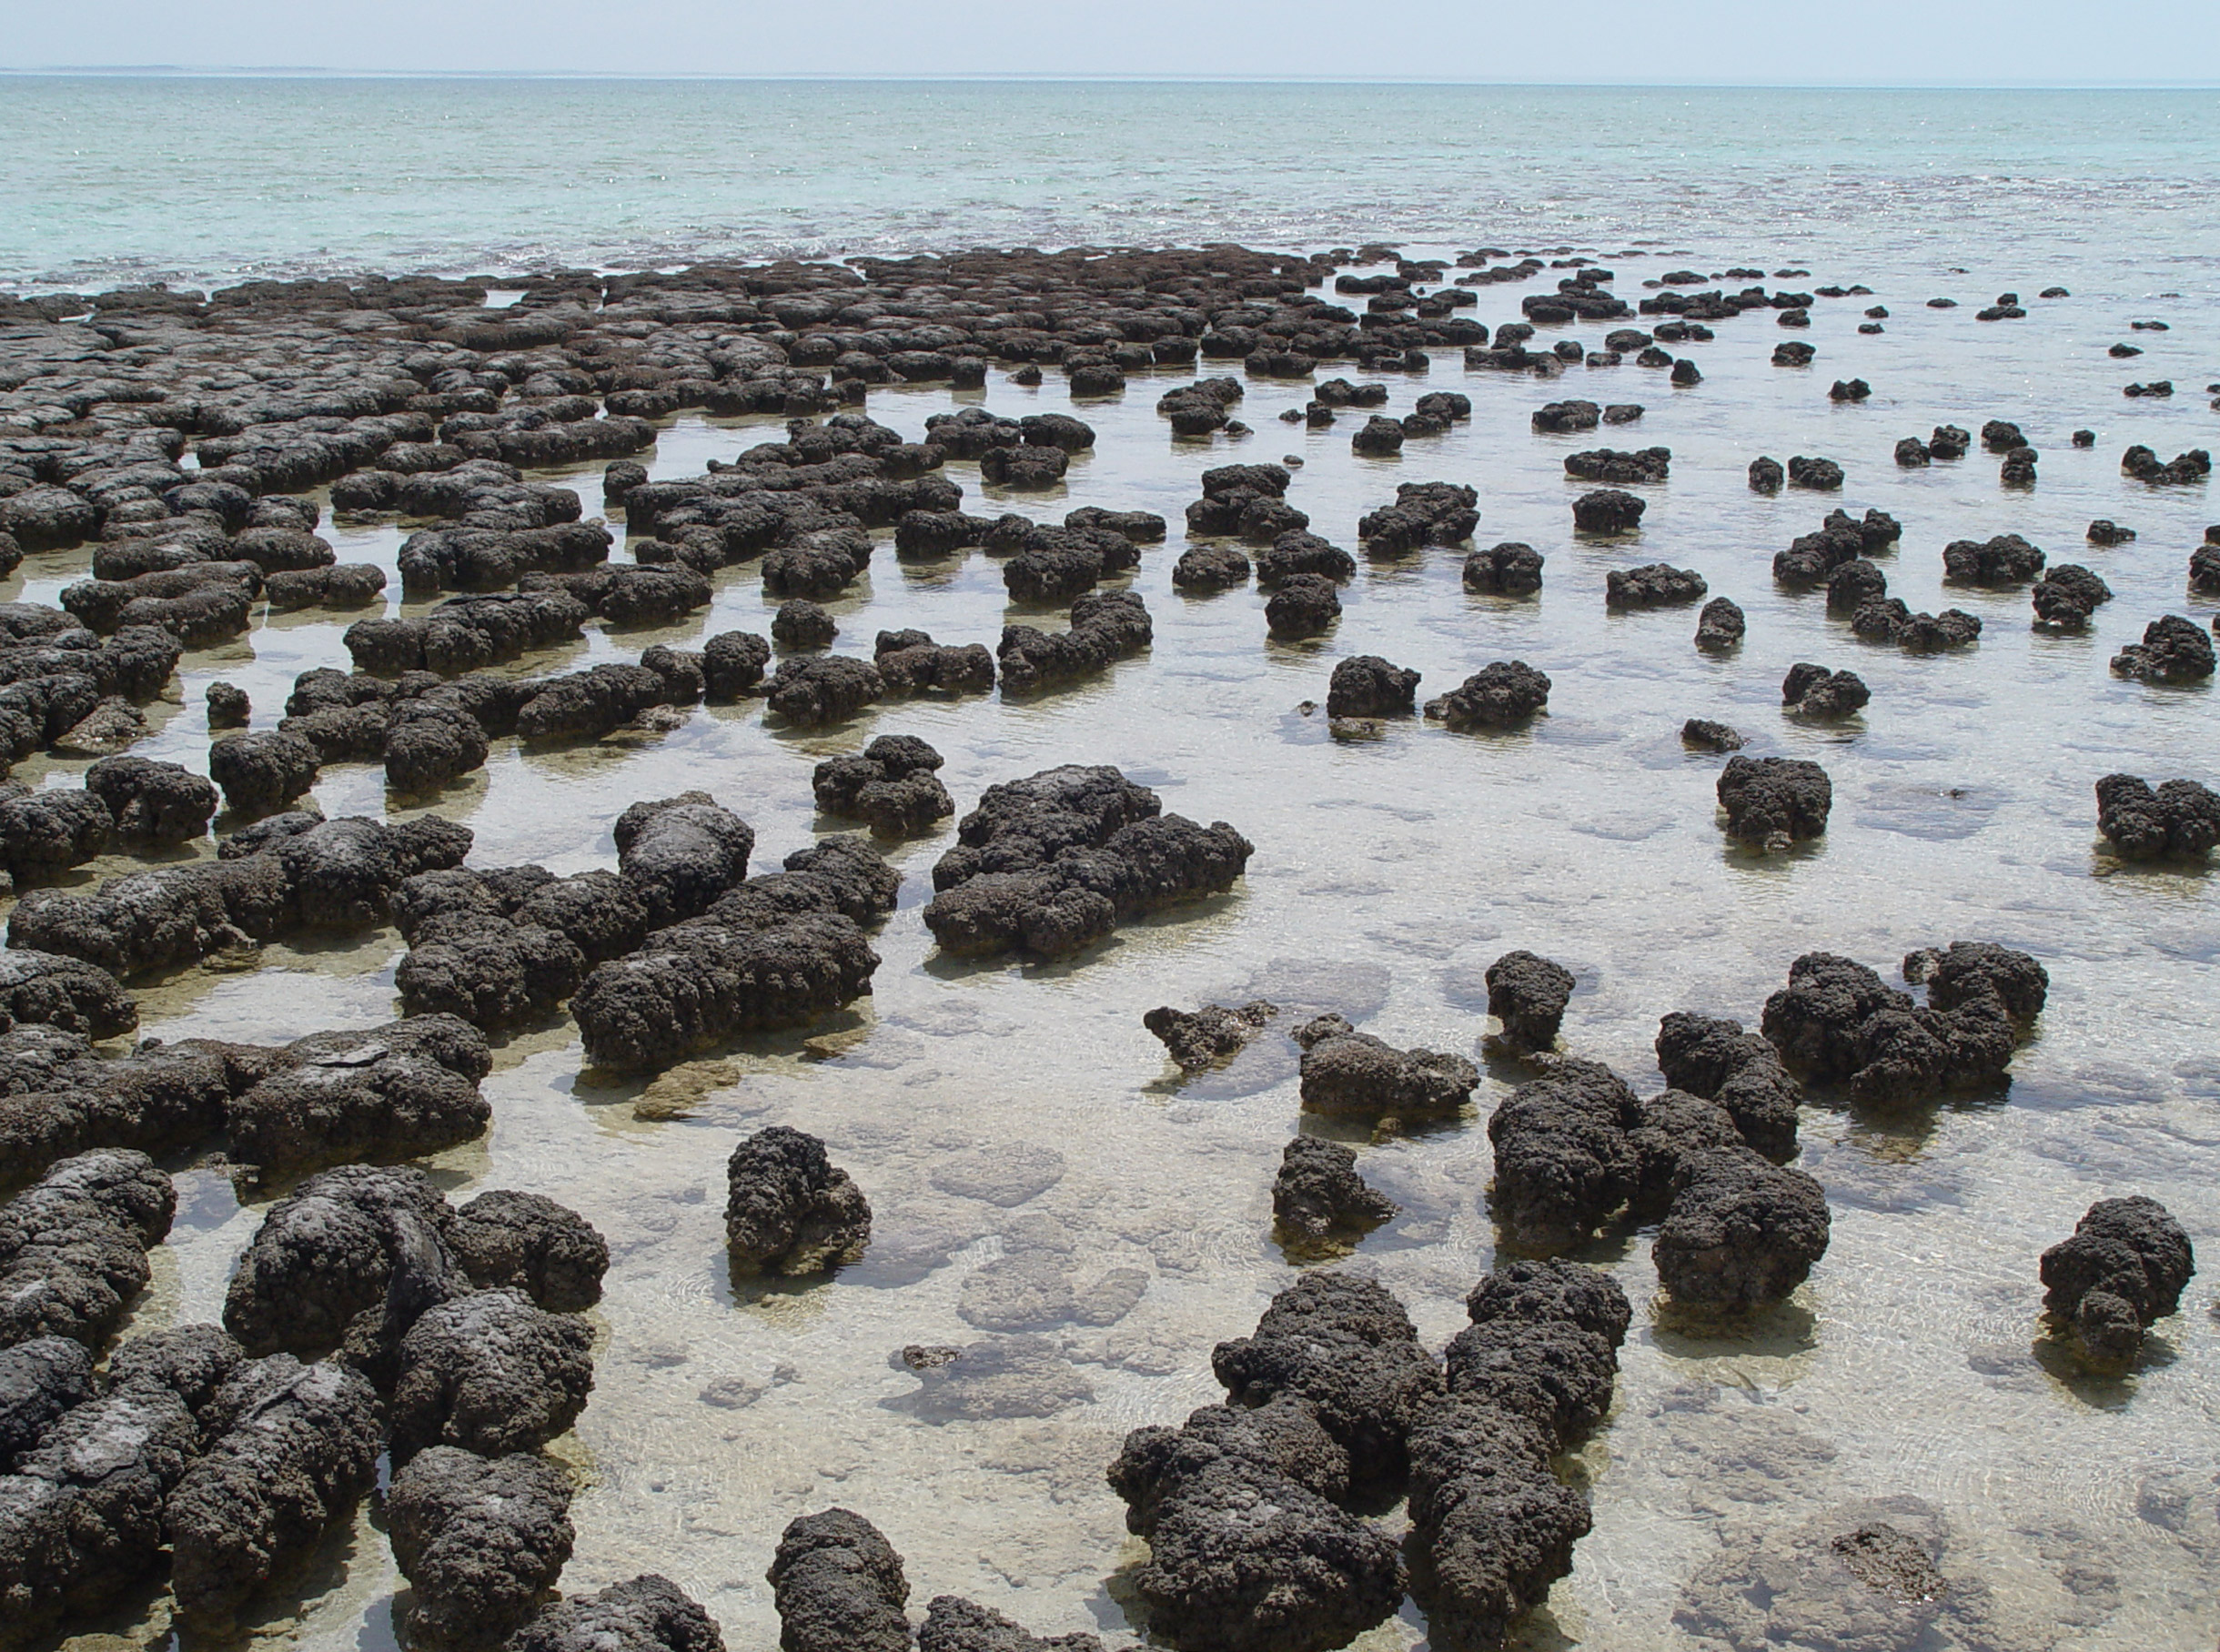 The stromatolites shown in the photograph above are fossils which were produced by cyanobacteria 3.5 billion years in Shark Bay, Australia. Cyanobacteria - a simple, single-celled lifeform - produced large amounts of oxygen via photosynthesis causing the first major oxygenation even in Earth's history.  Photograph taken by Paul Harrison.